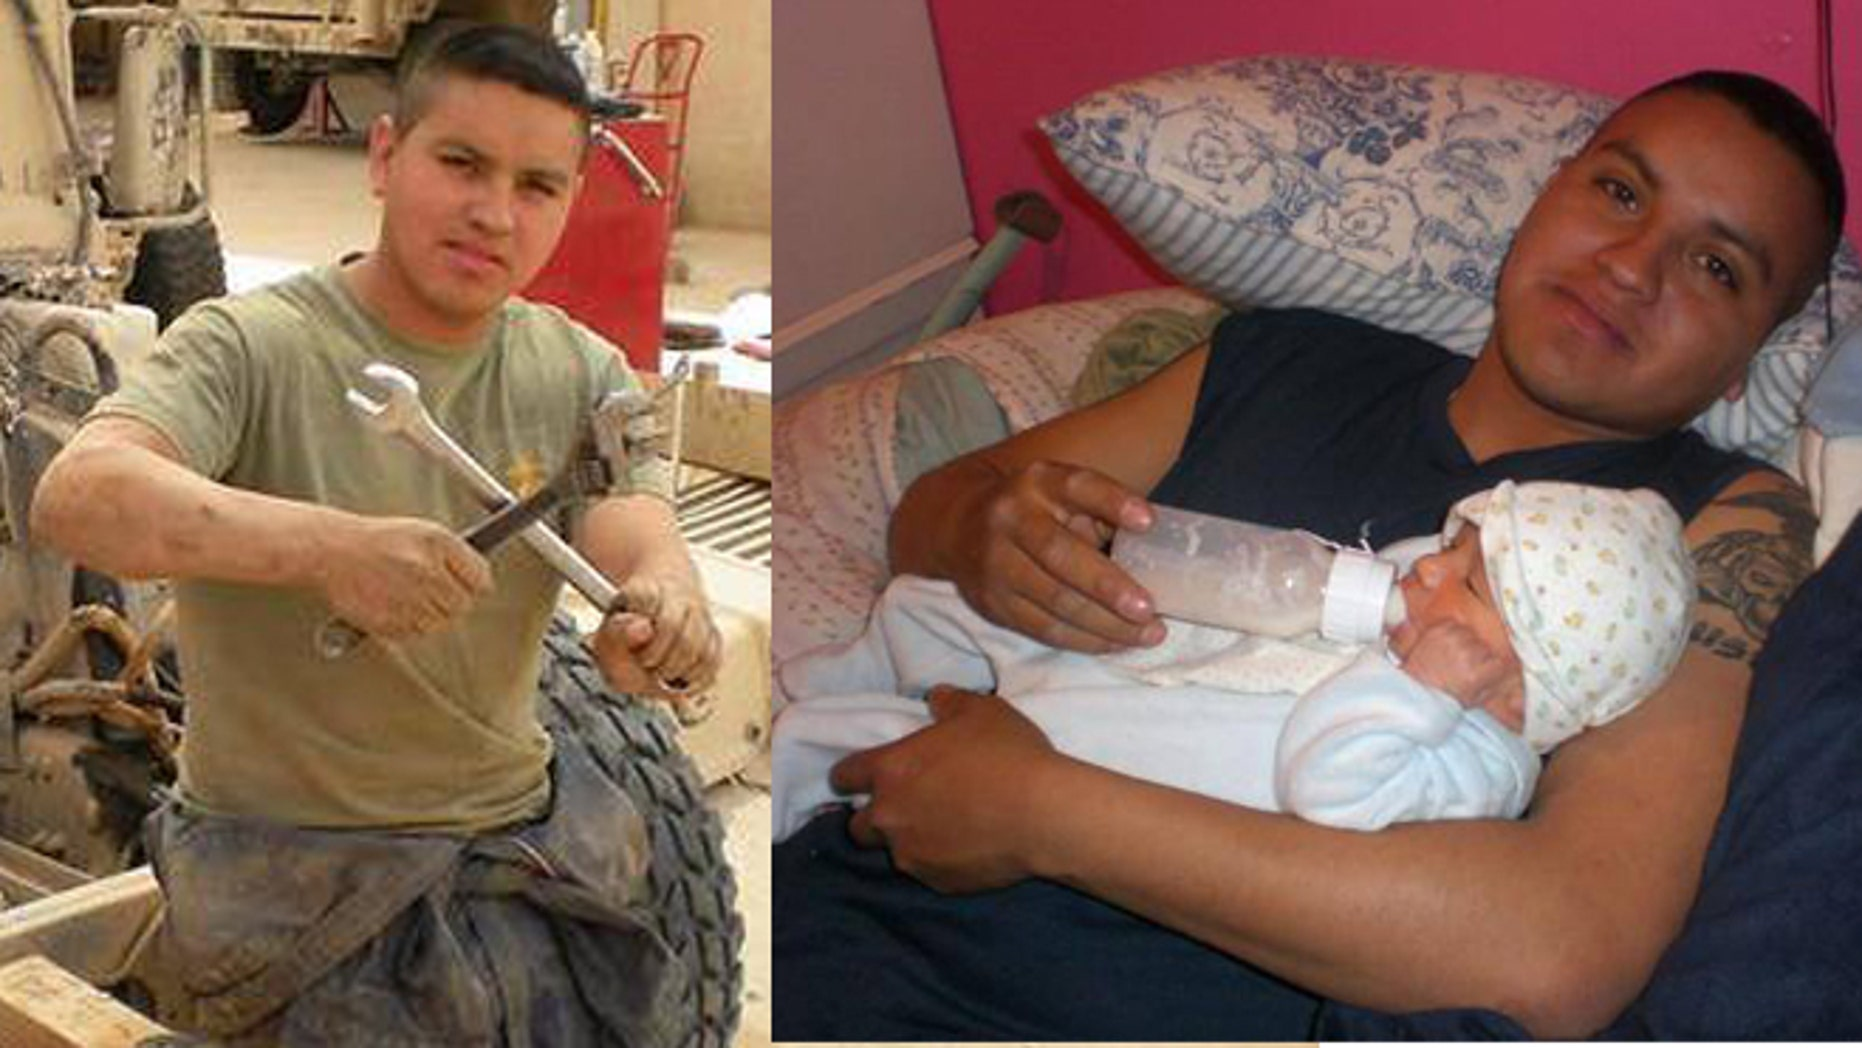 Armando Torres, 25, served with the marines from 2005 to 2011 (pictured left). He is the father of two sons. (pictured right).